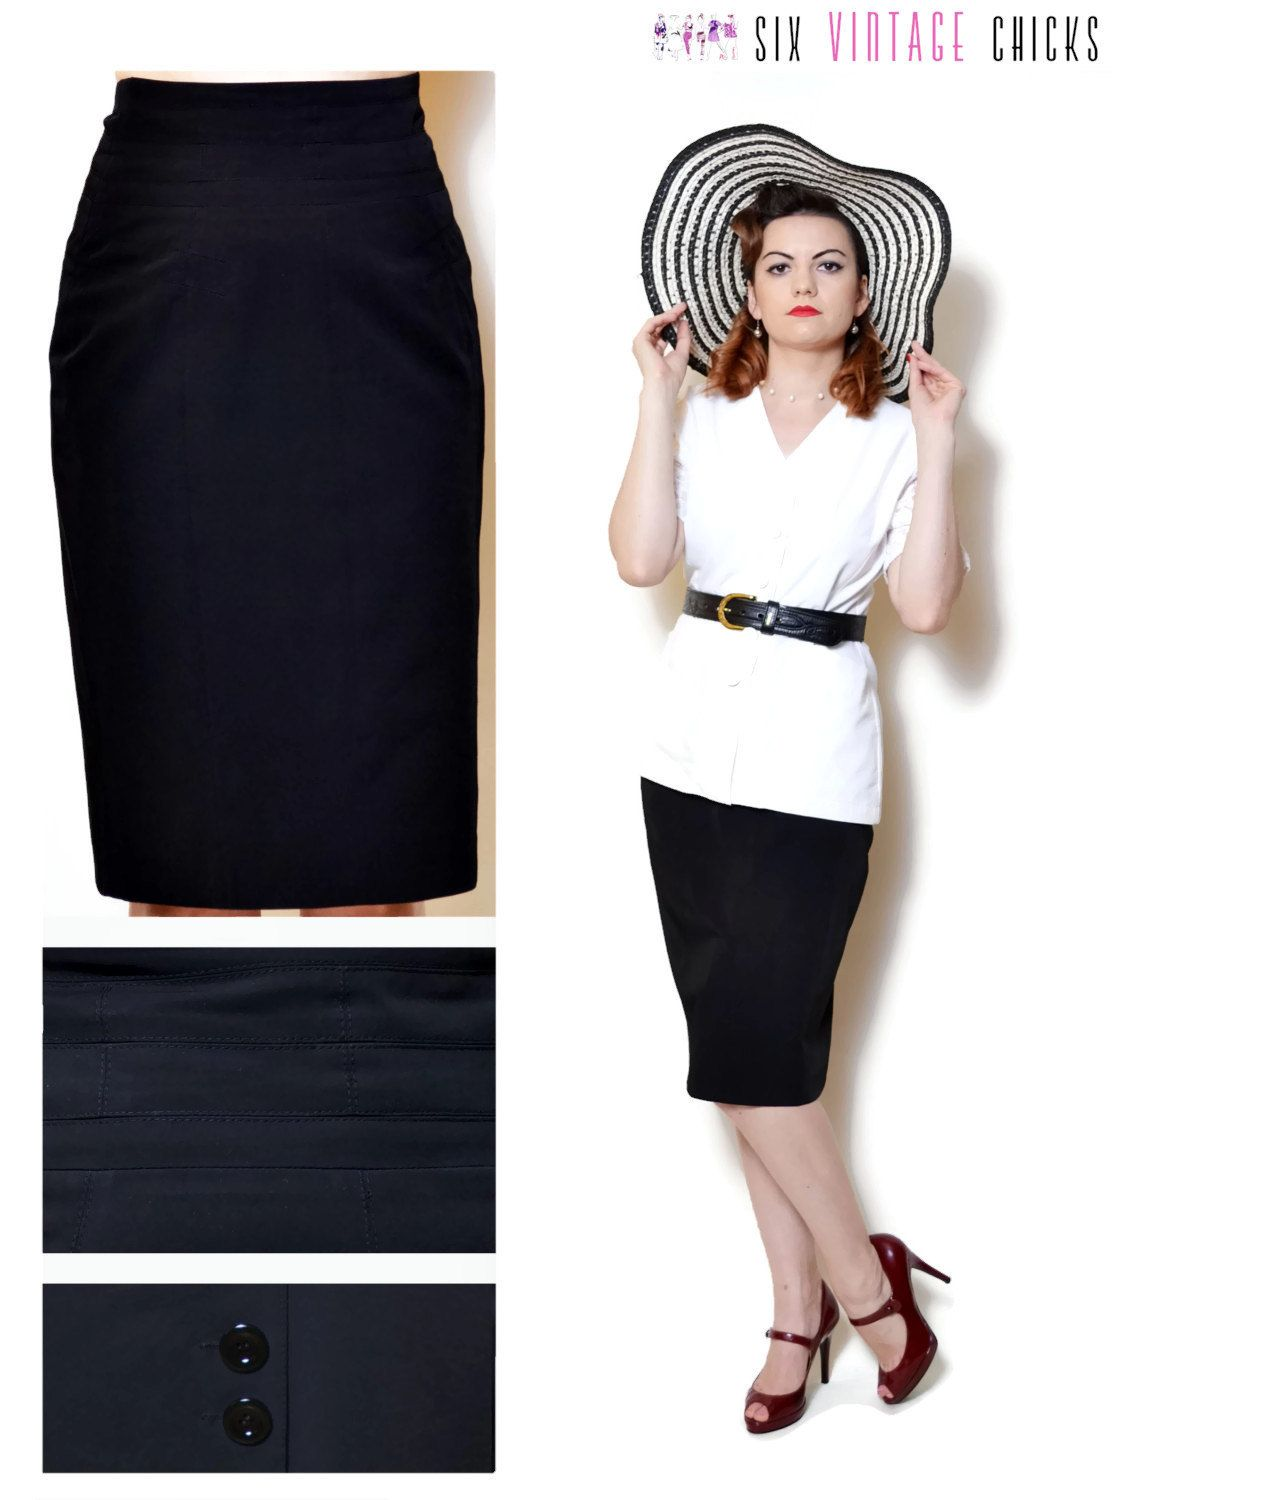 24af8c0b6 Pencil Skirt Women high waisted evening women clothing office clothes black midi  skirt 90s clothing vintage sexy gifts minimalist Size M by SixVintageChicks  ...